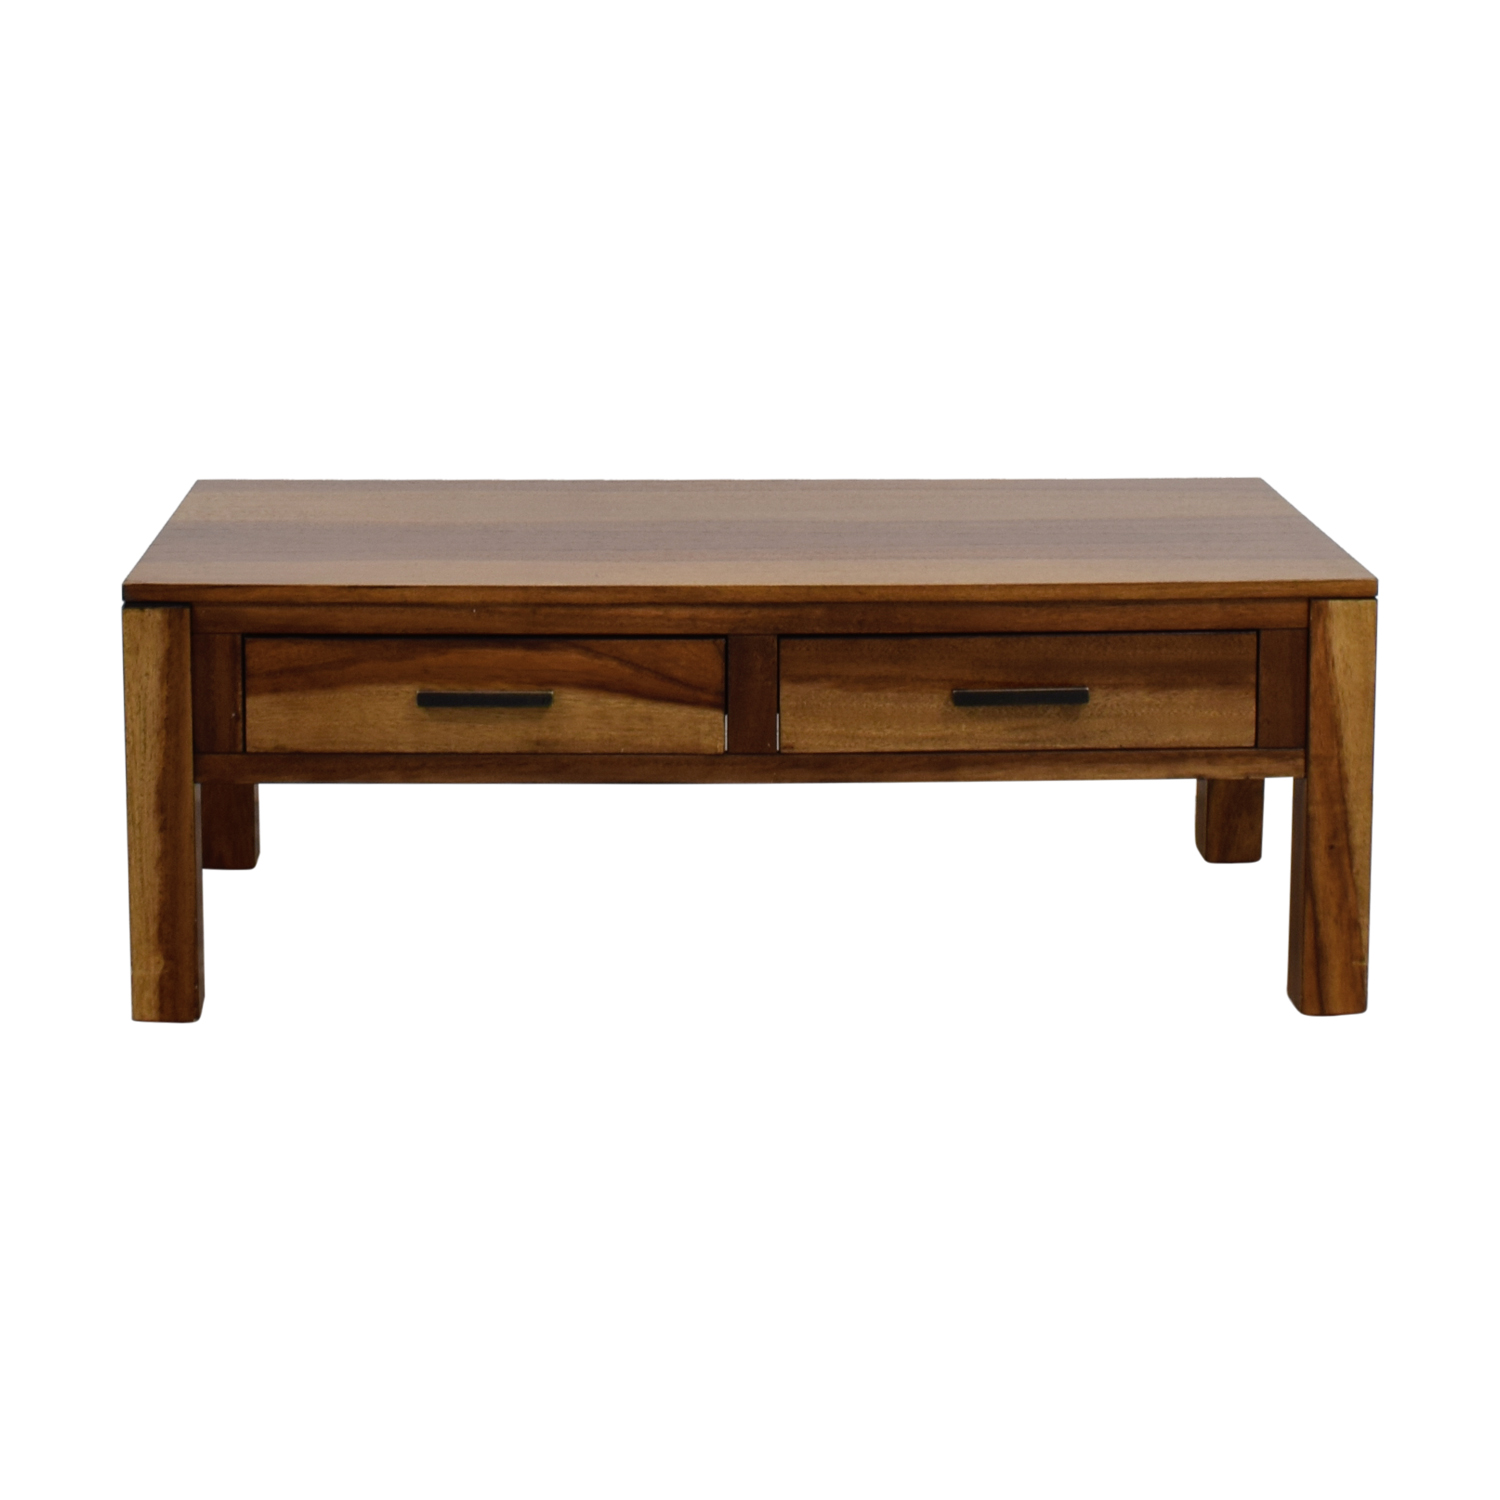 62 Off Coaster Coaster Coffee Table With Two Drawers Tables